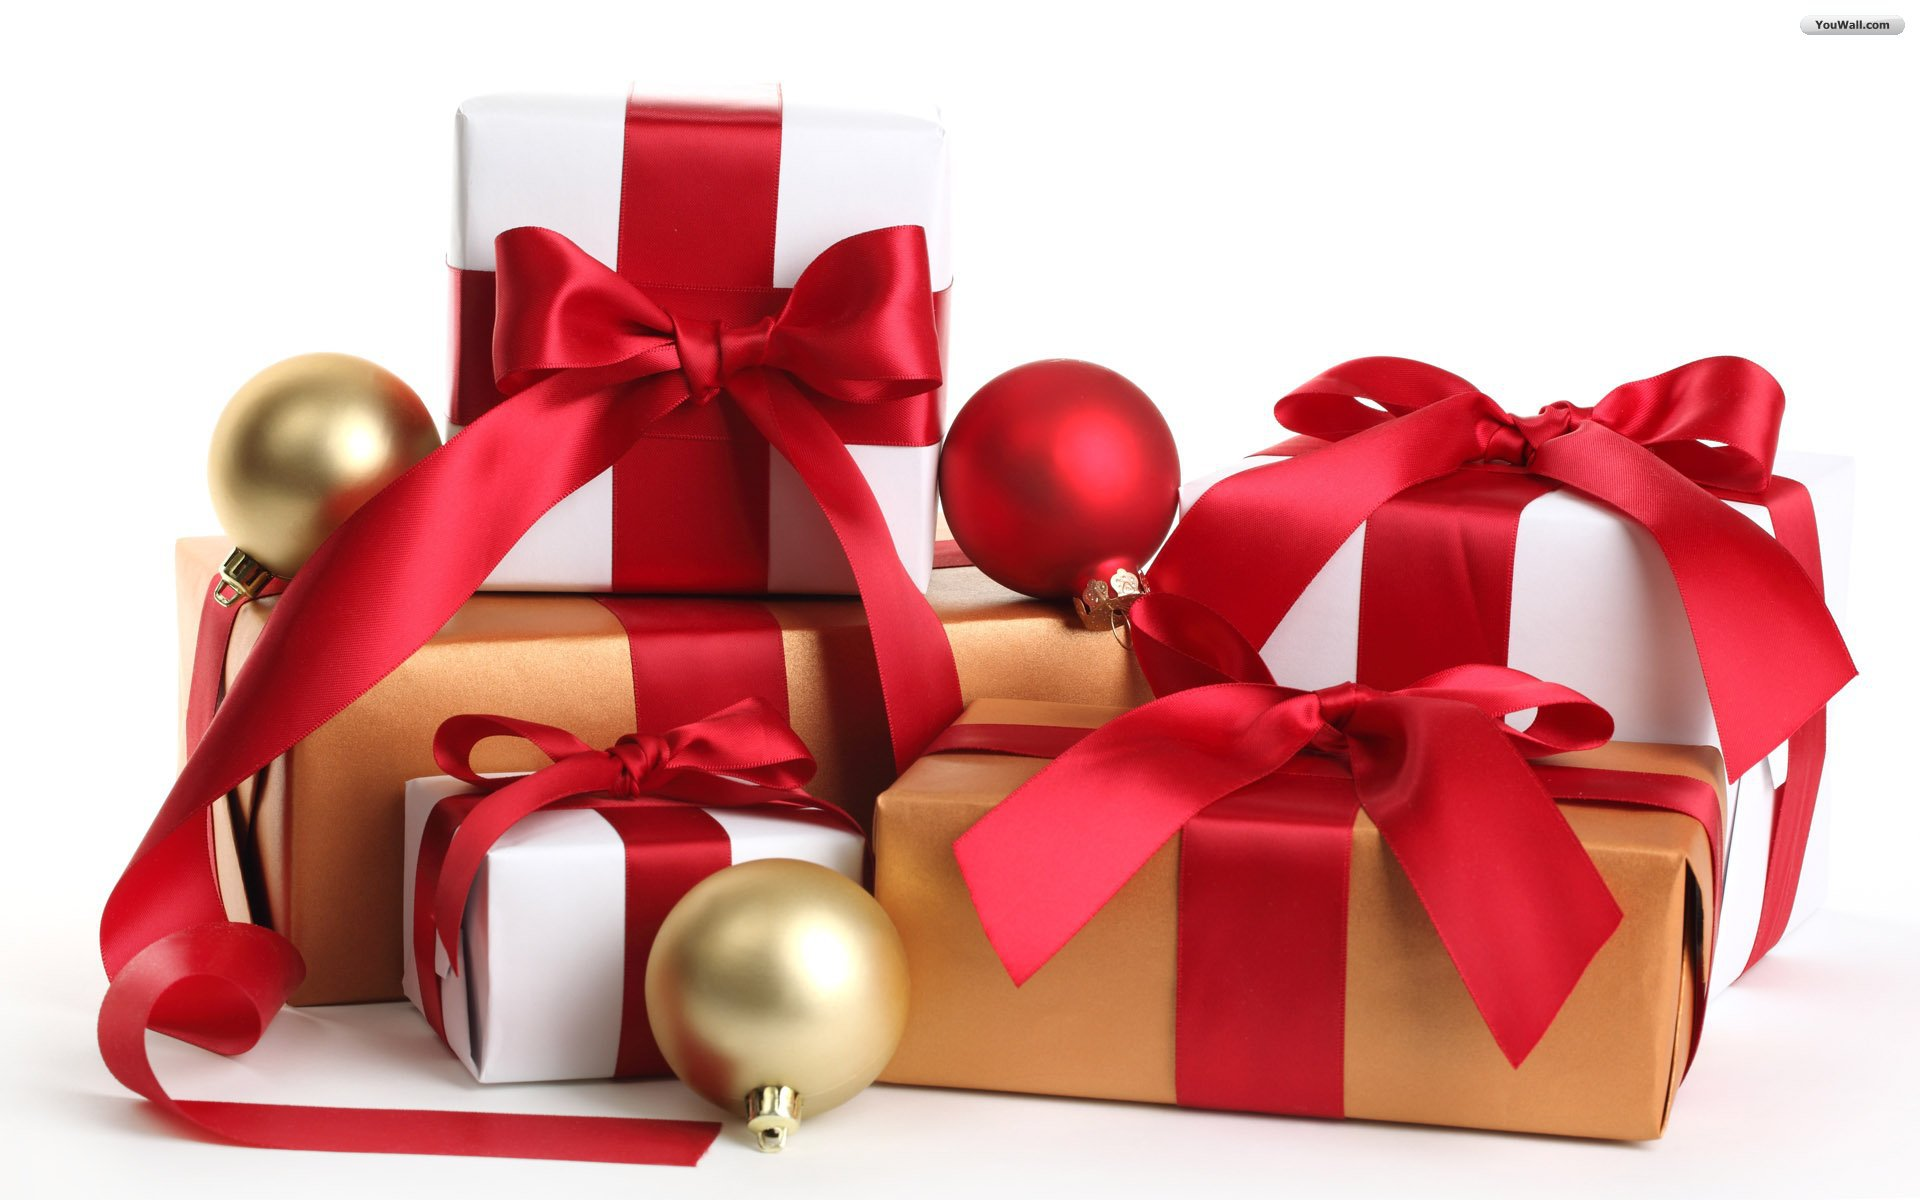 What are the benefits and reasons of using wholesale white boxes gift?